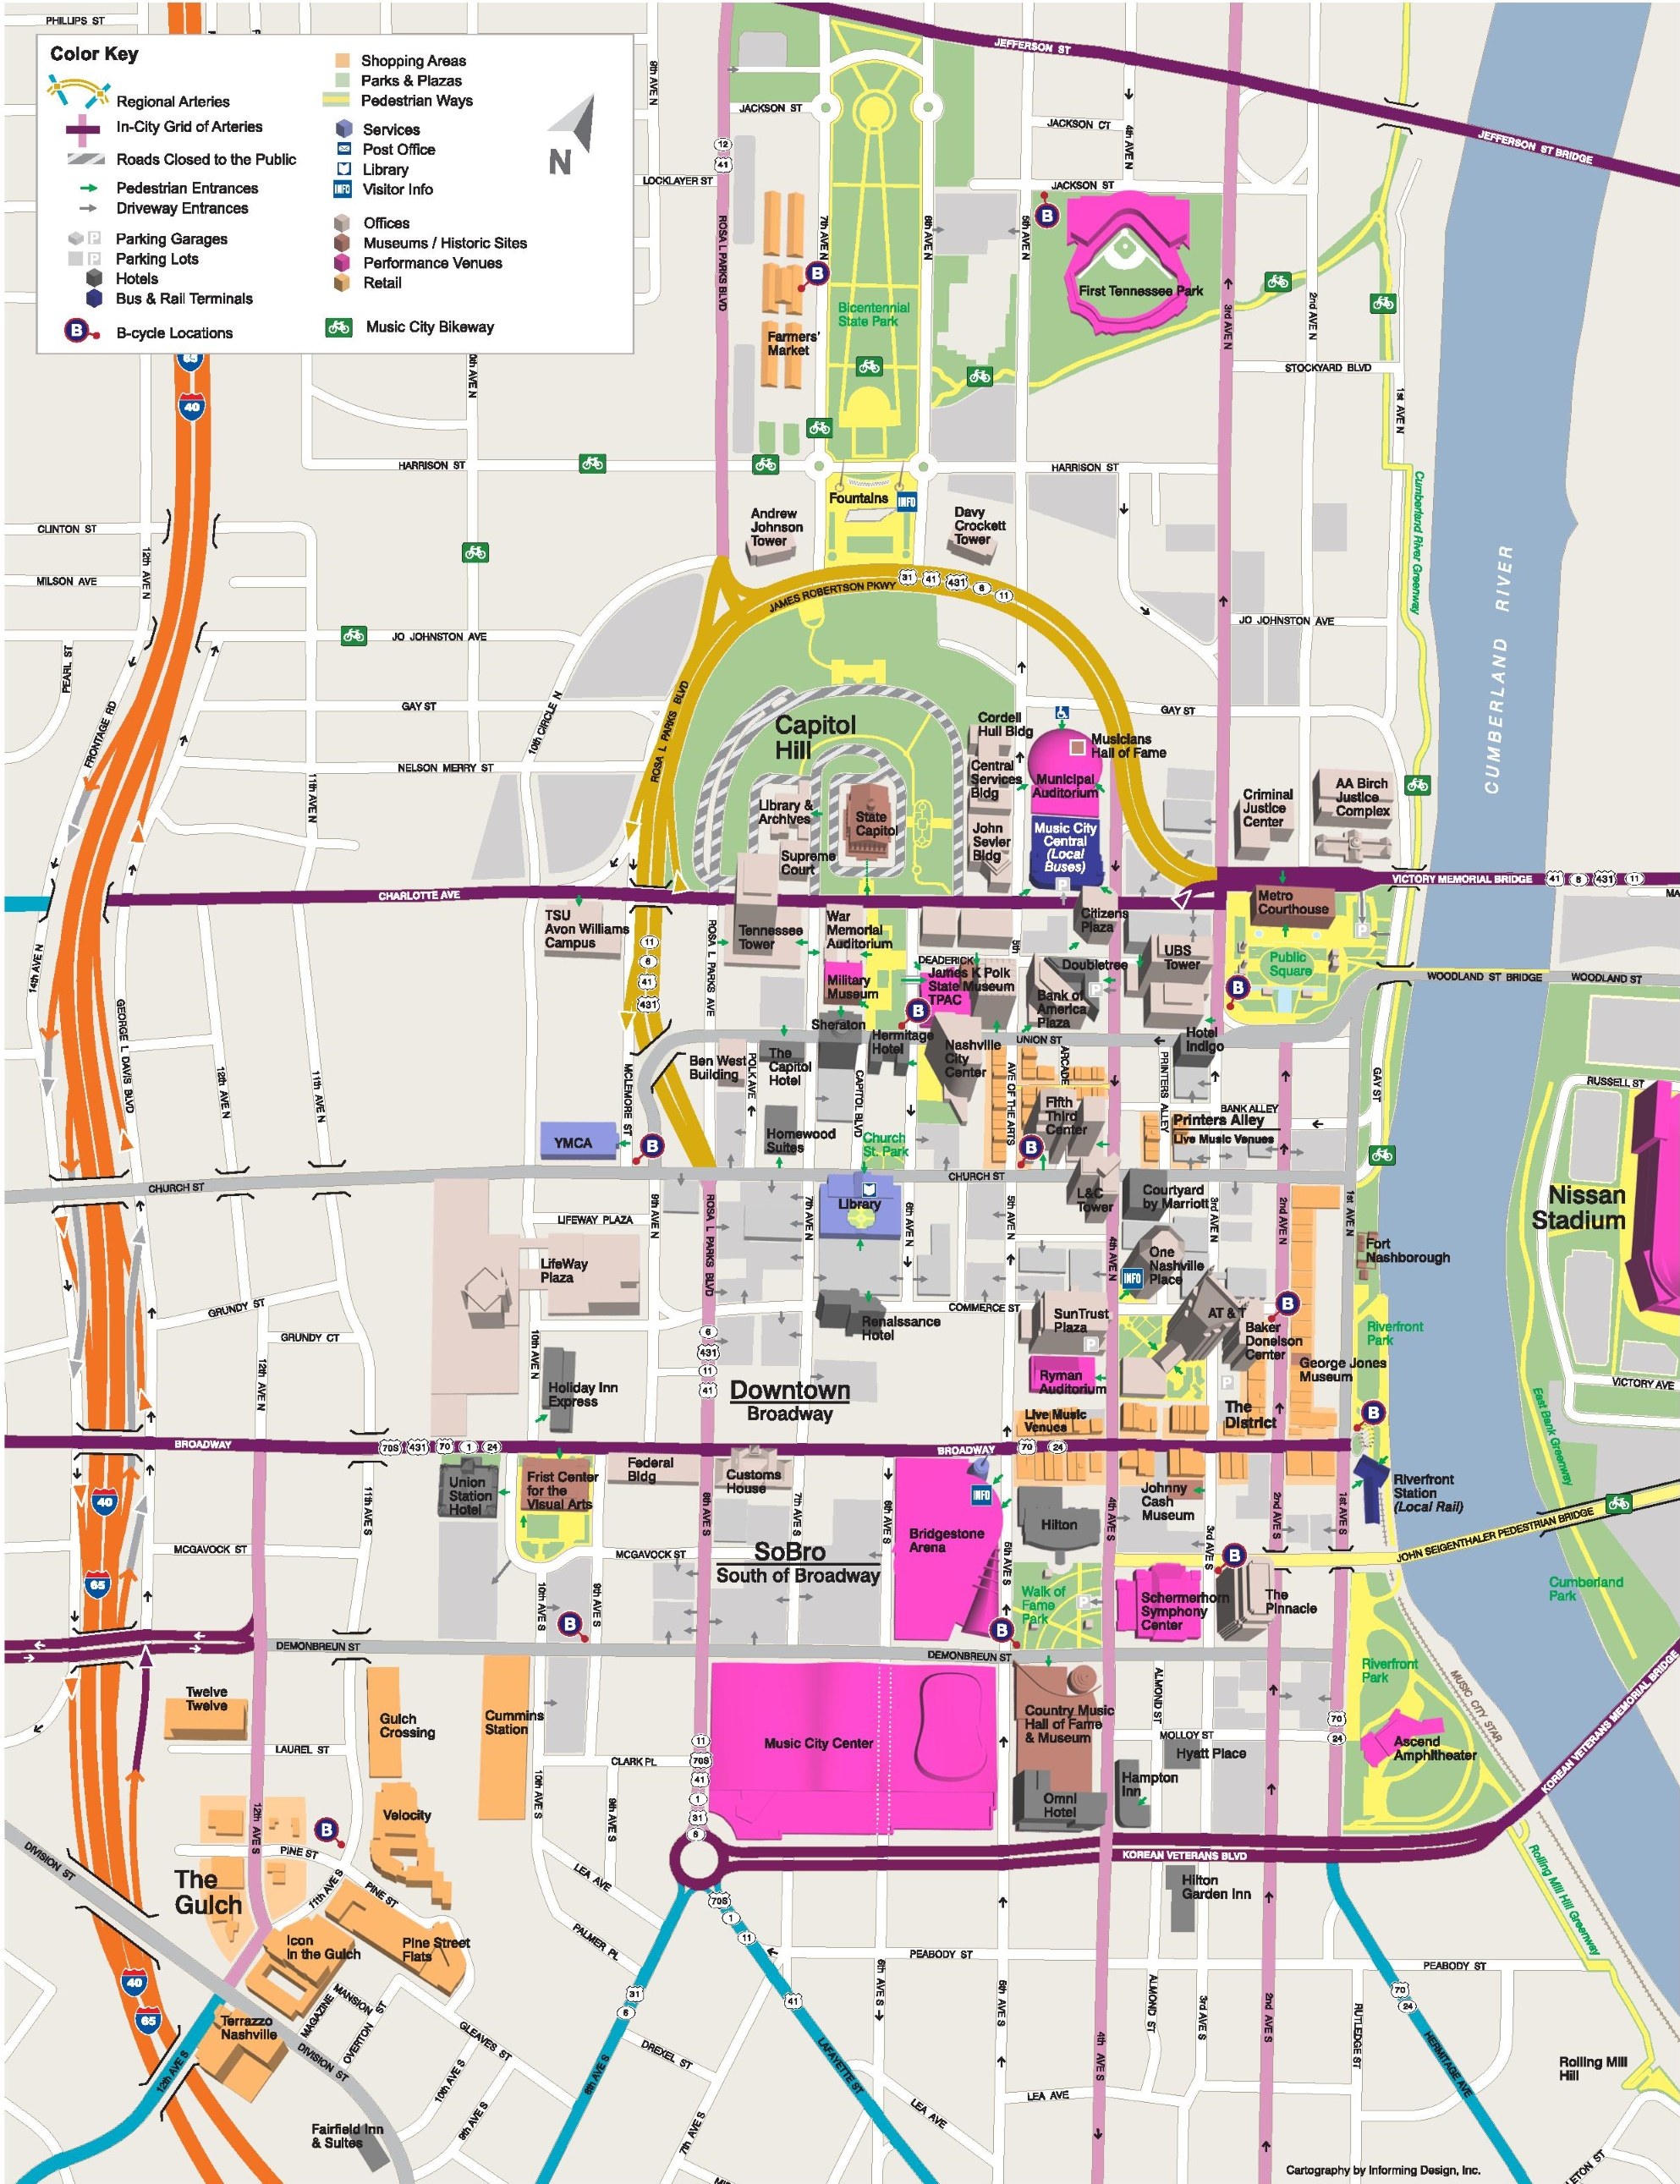 Nashville tourist attractions map – Nashville Tourist Map